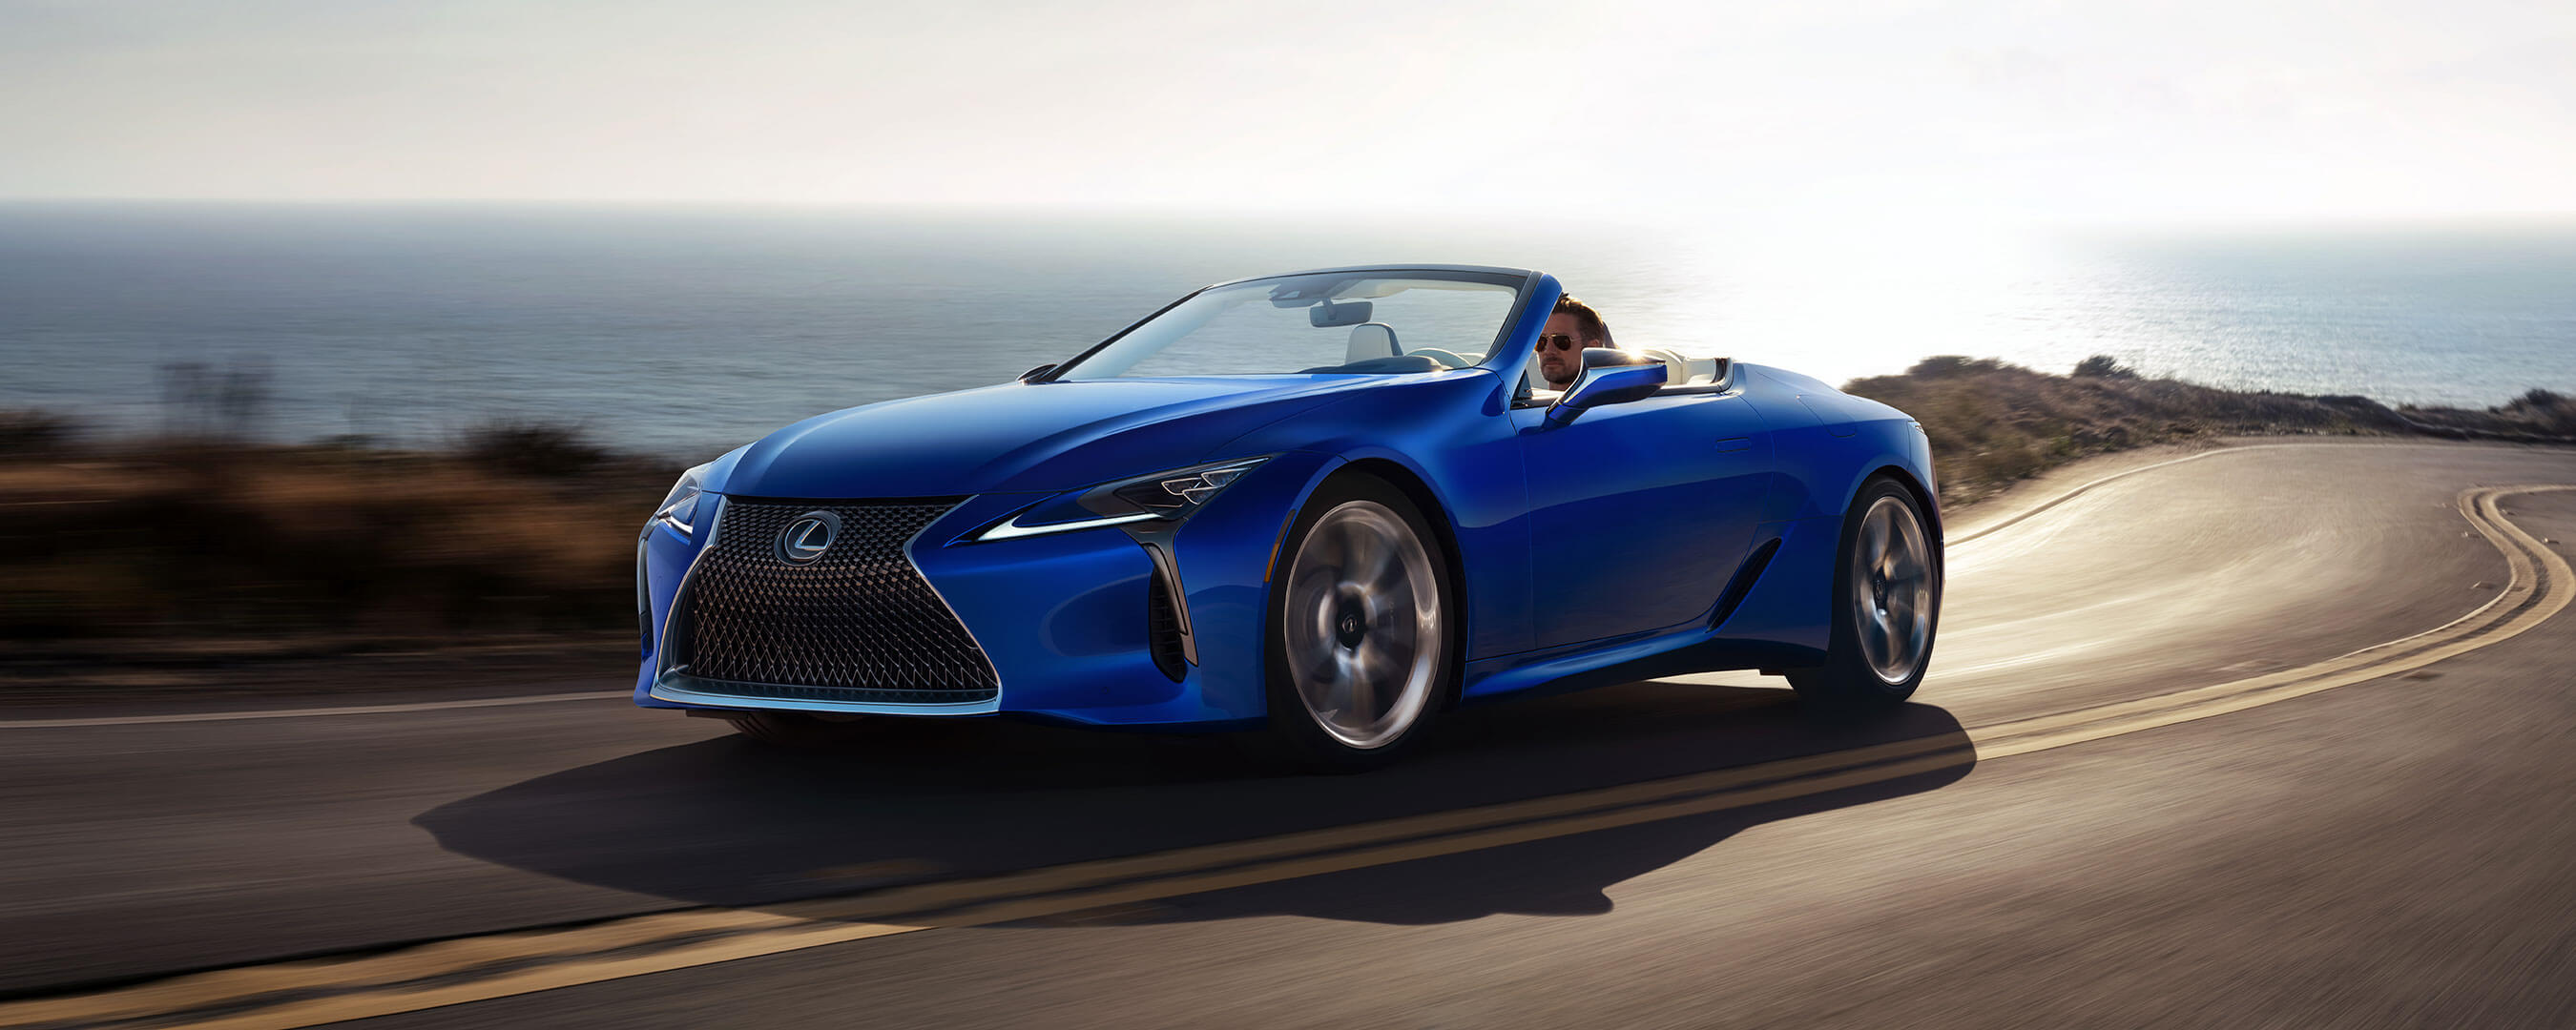 2020 lexus lc convertible experience exterior front